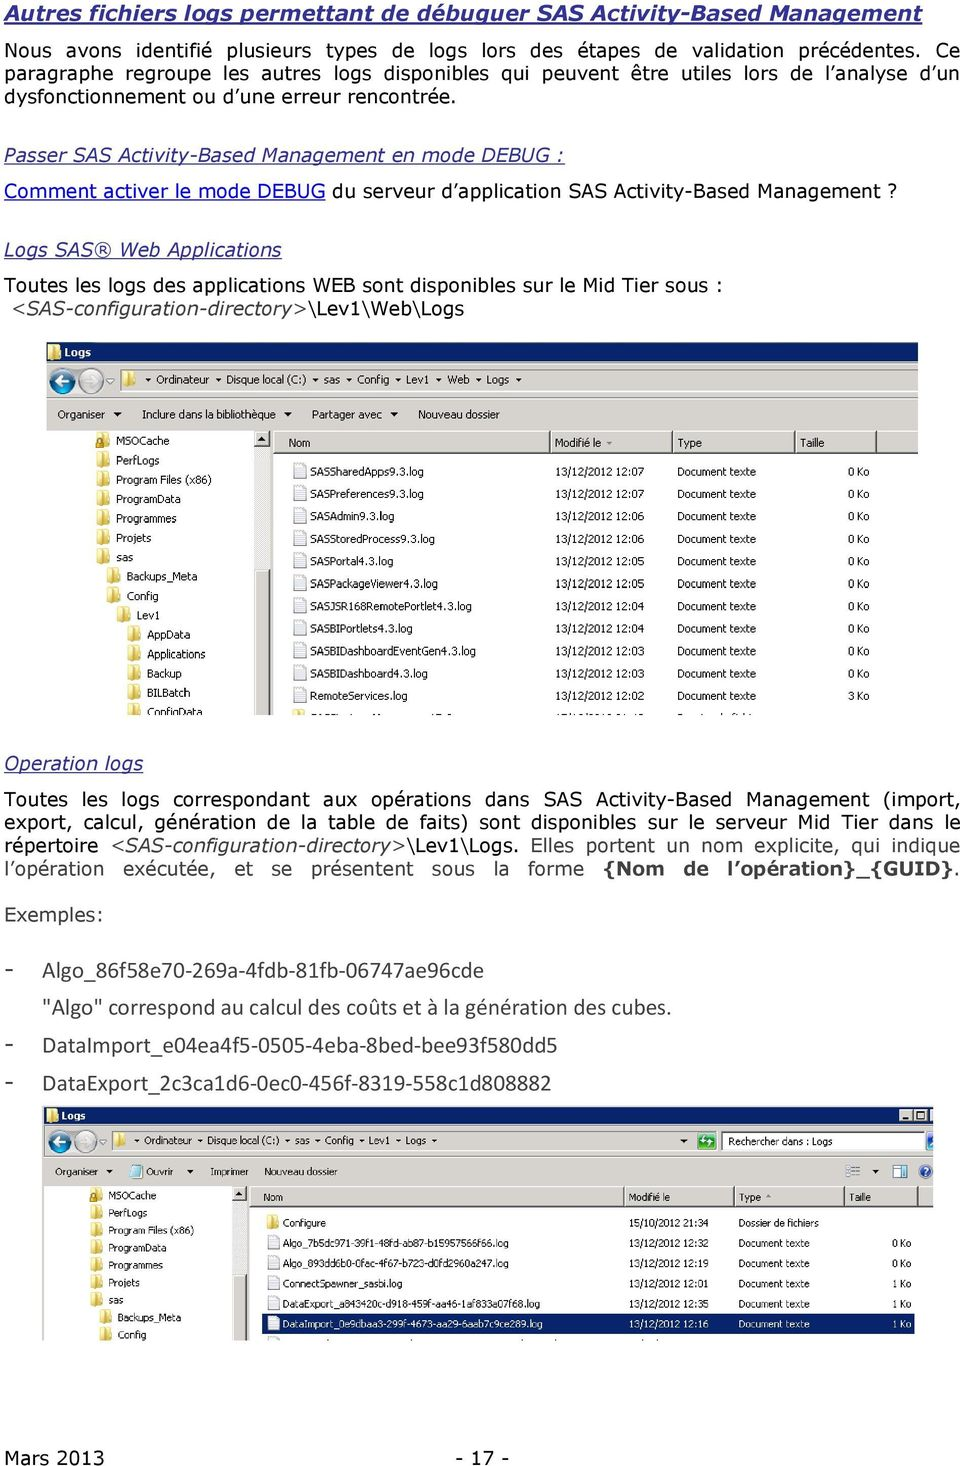 Passer SAS Activity-Based Management en mode DEBUG : Comment activer le mode DEBUG du serveur d application SAS Activity-Based Management?